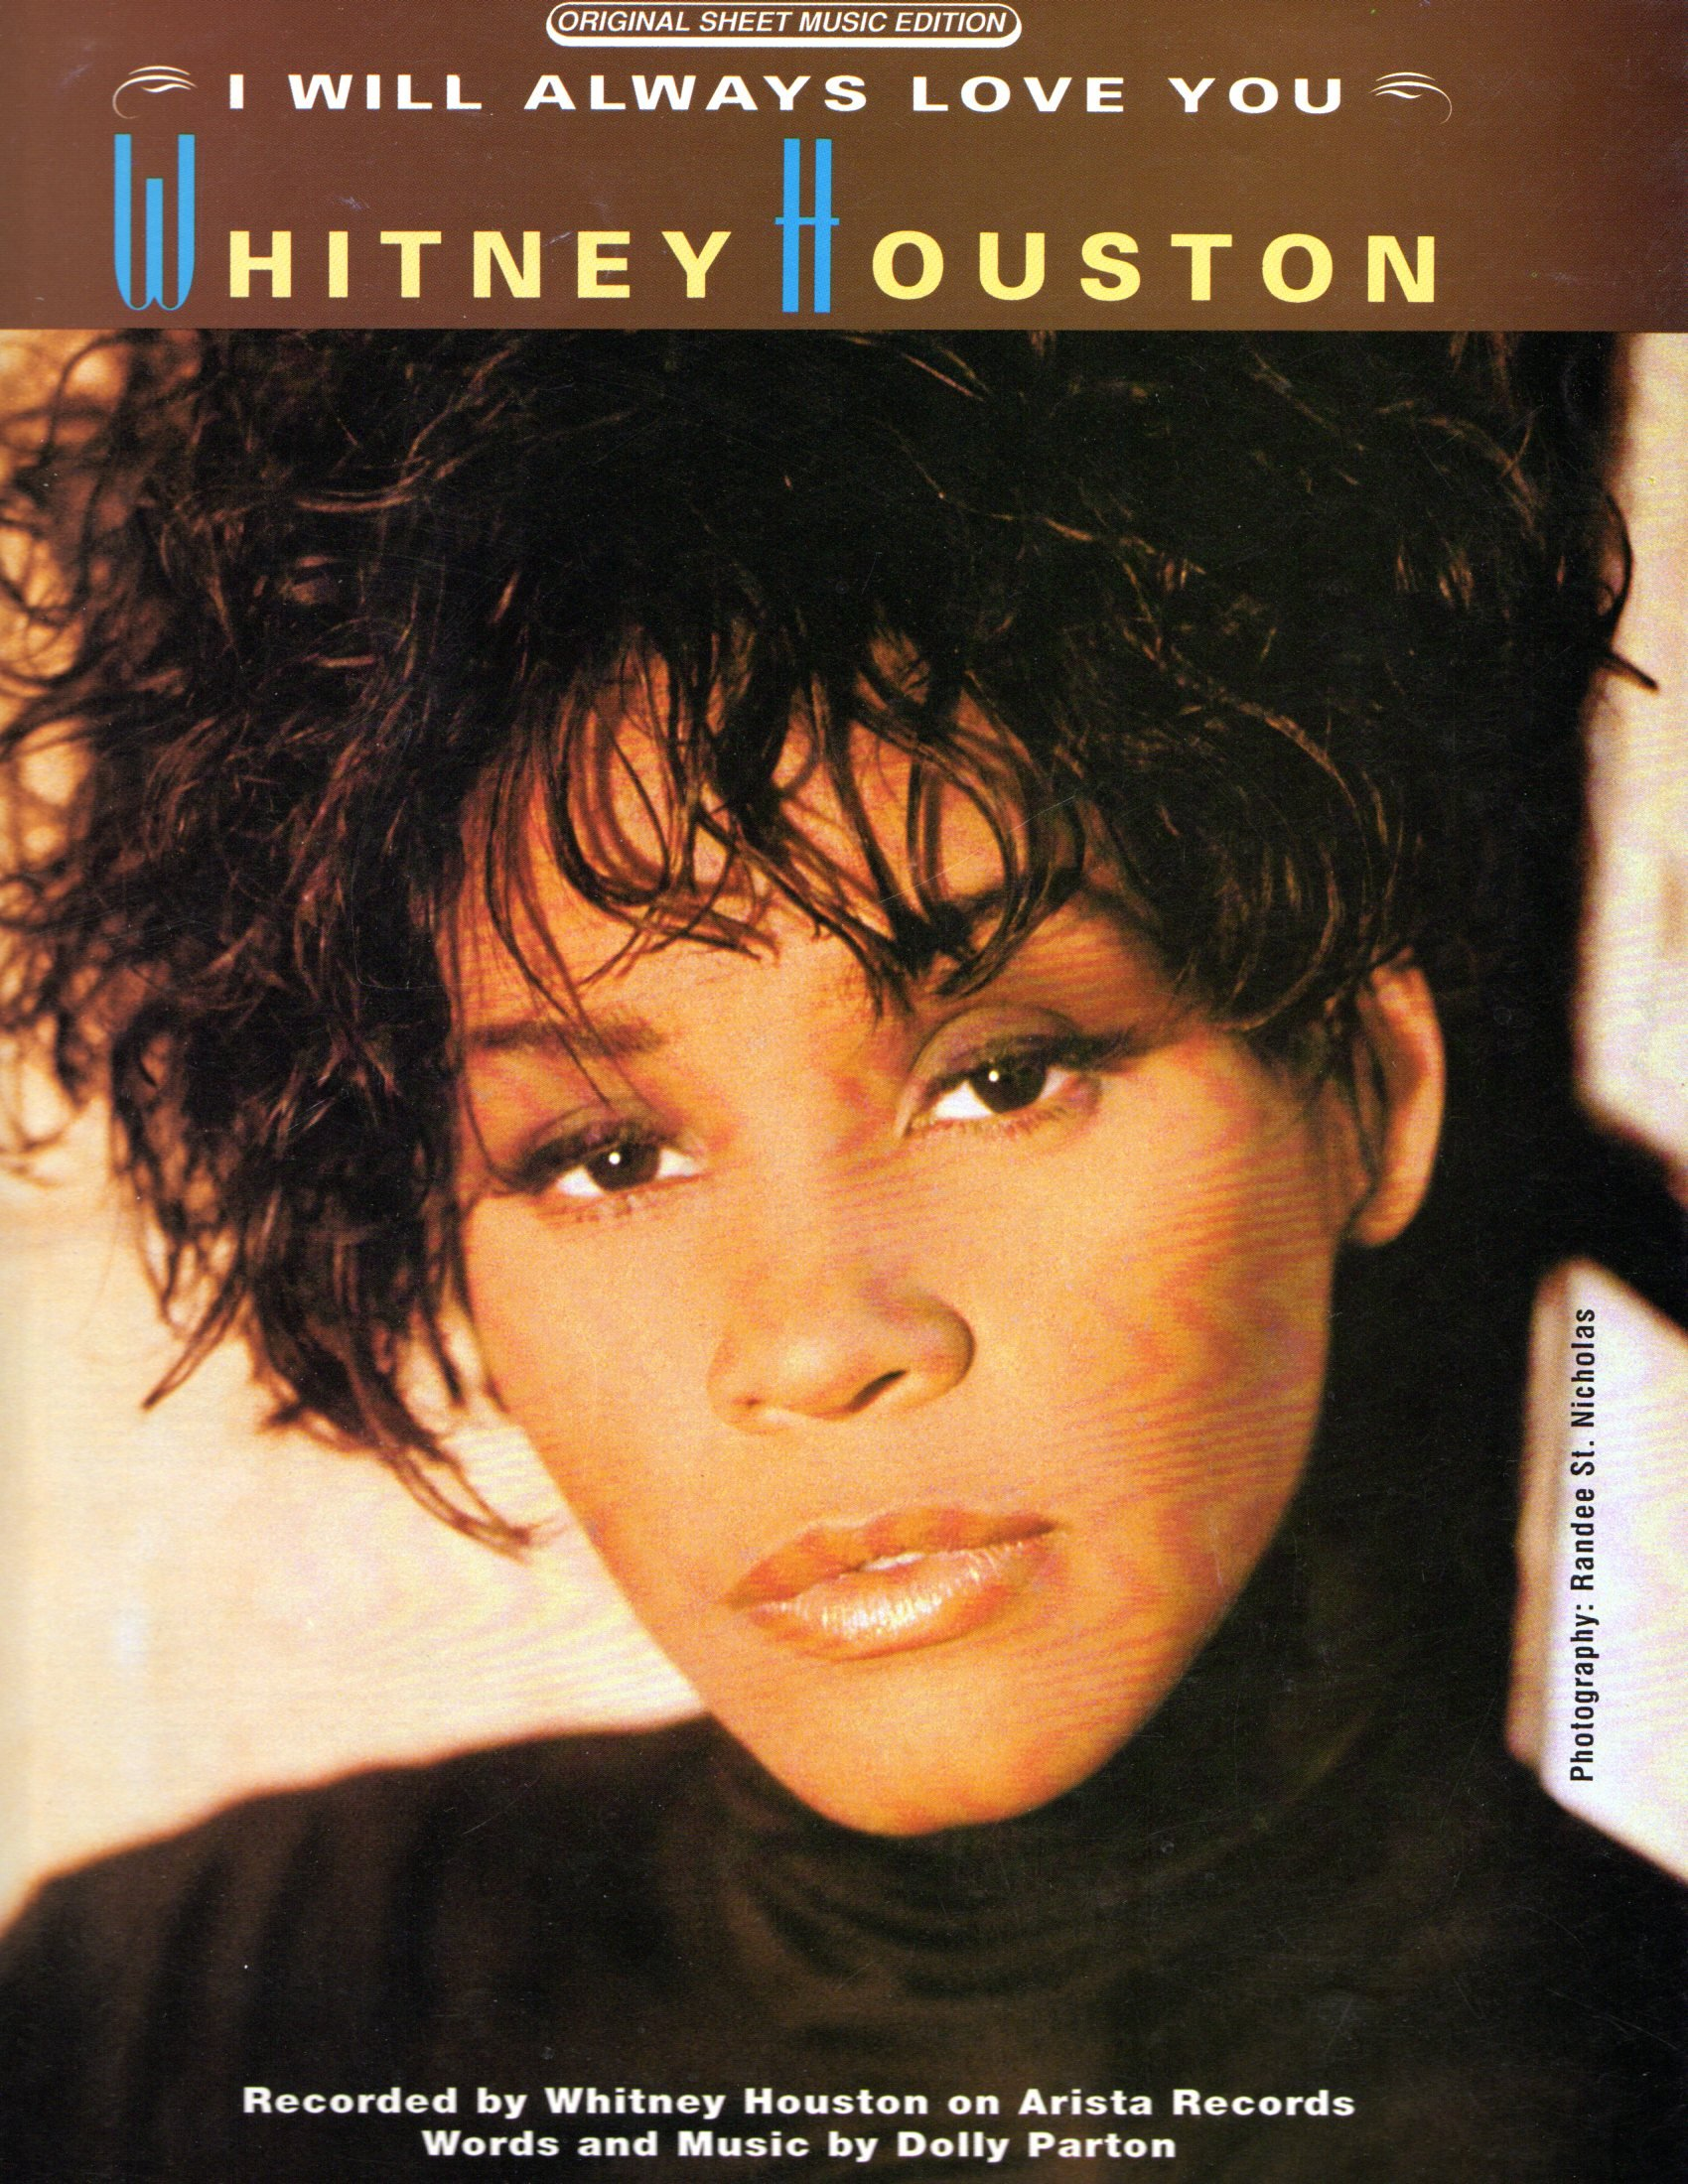 i will always love you as sung by whitney houston original sheet music edition